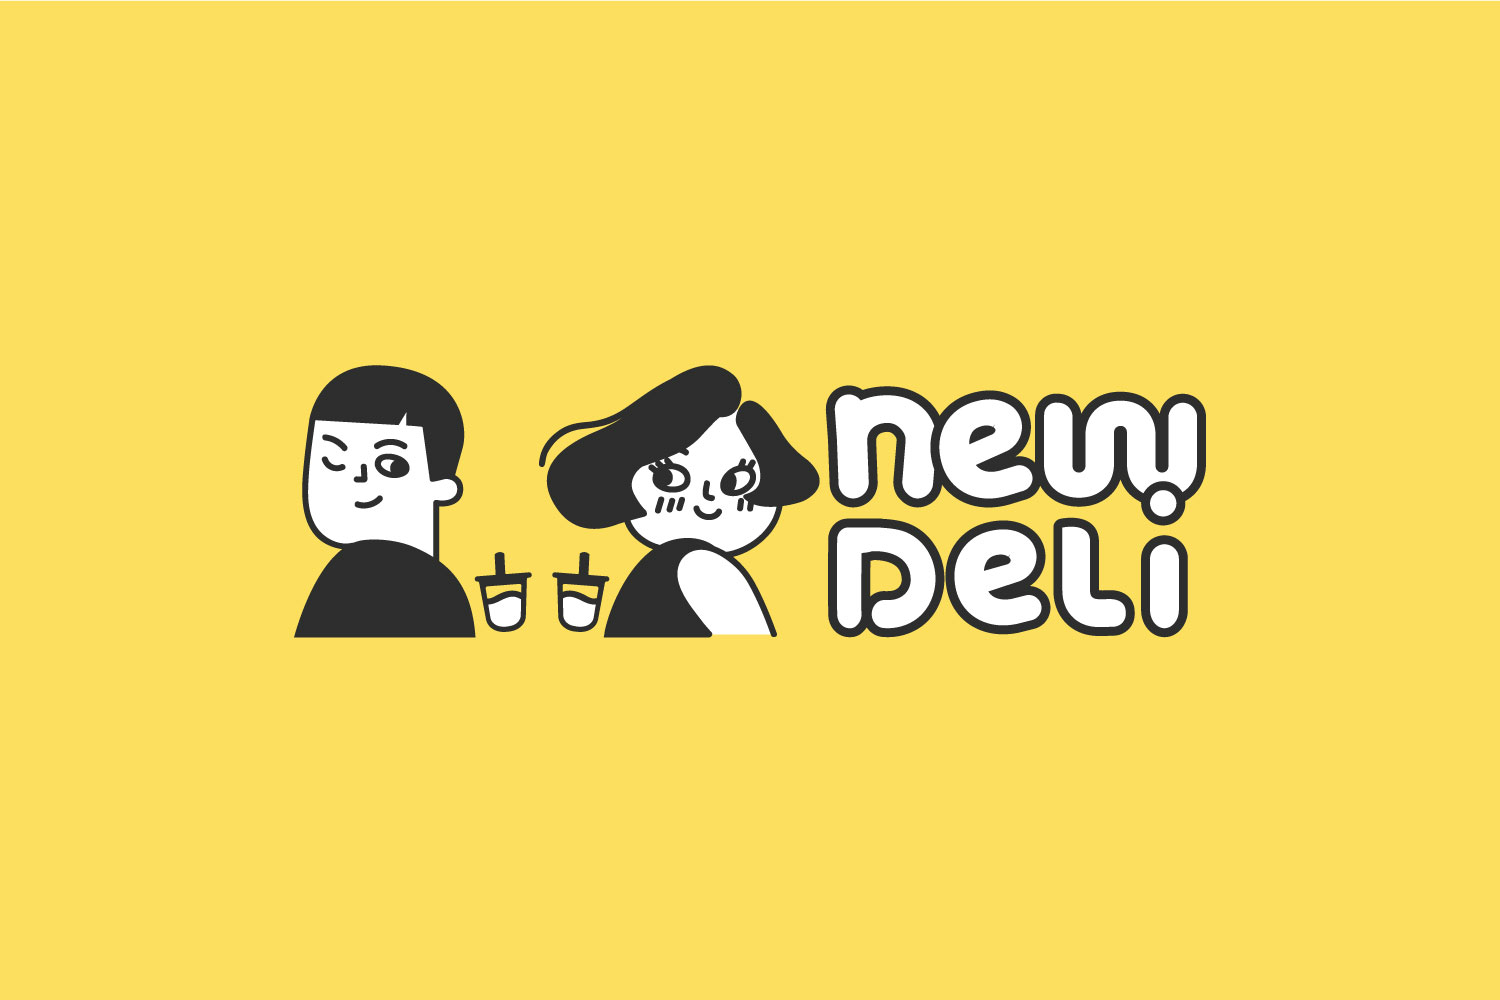 New Deli Logo on yellow background